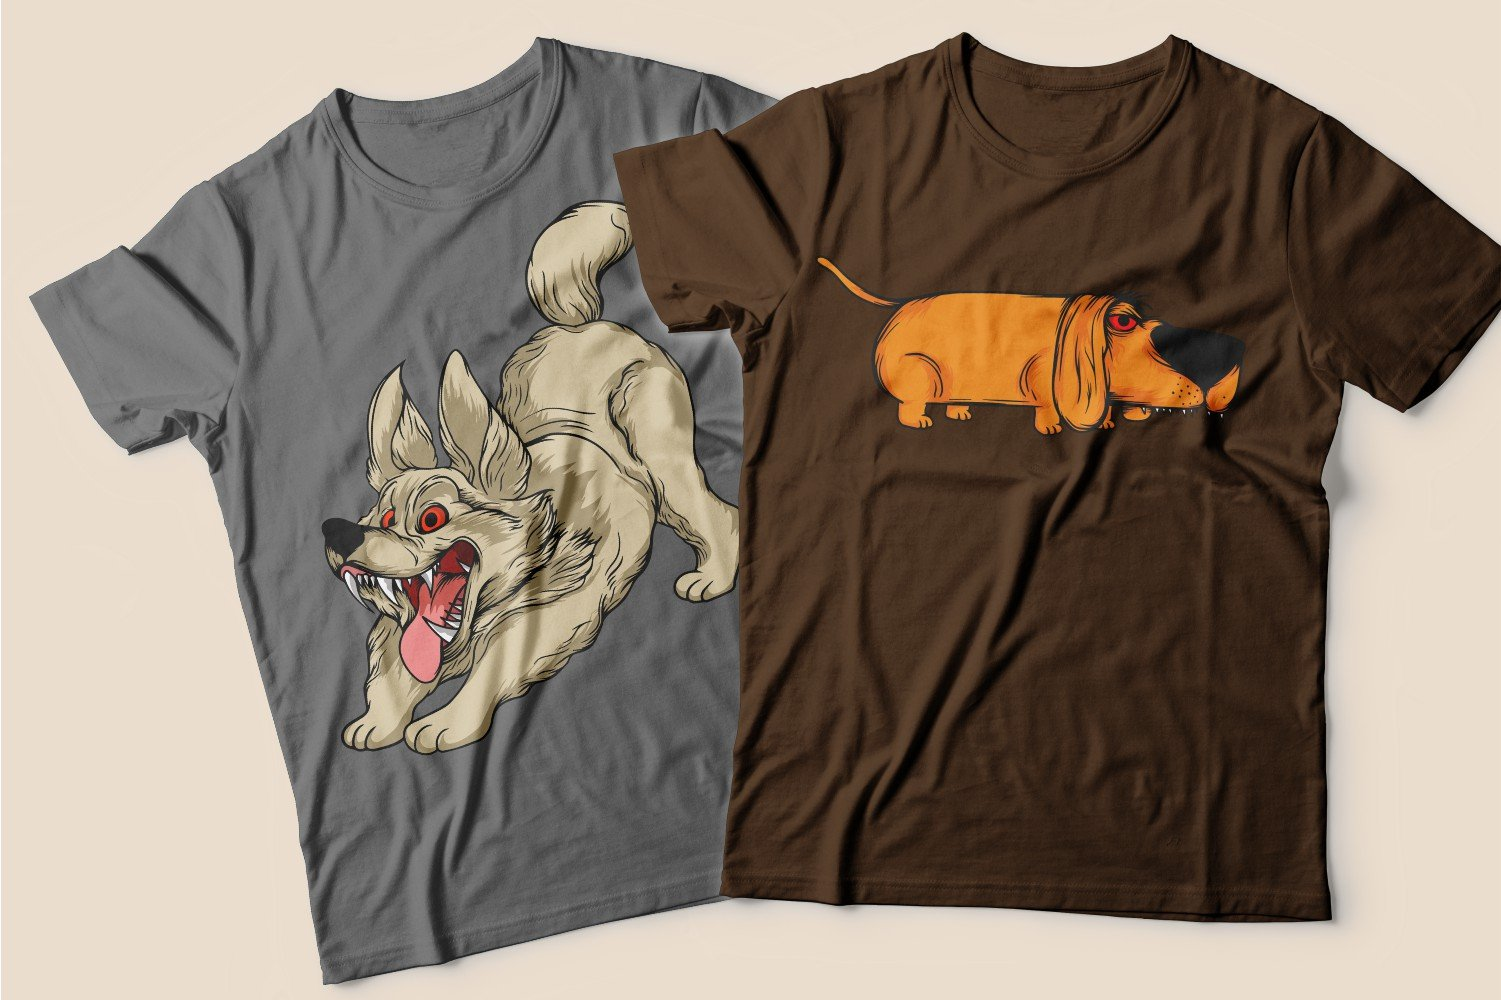 Two T-shirts: one brown with a dachshund, the other gray with a happy dog.